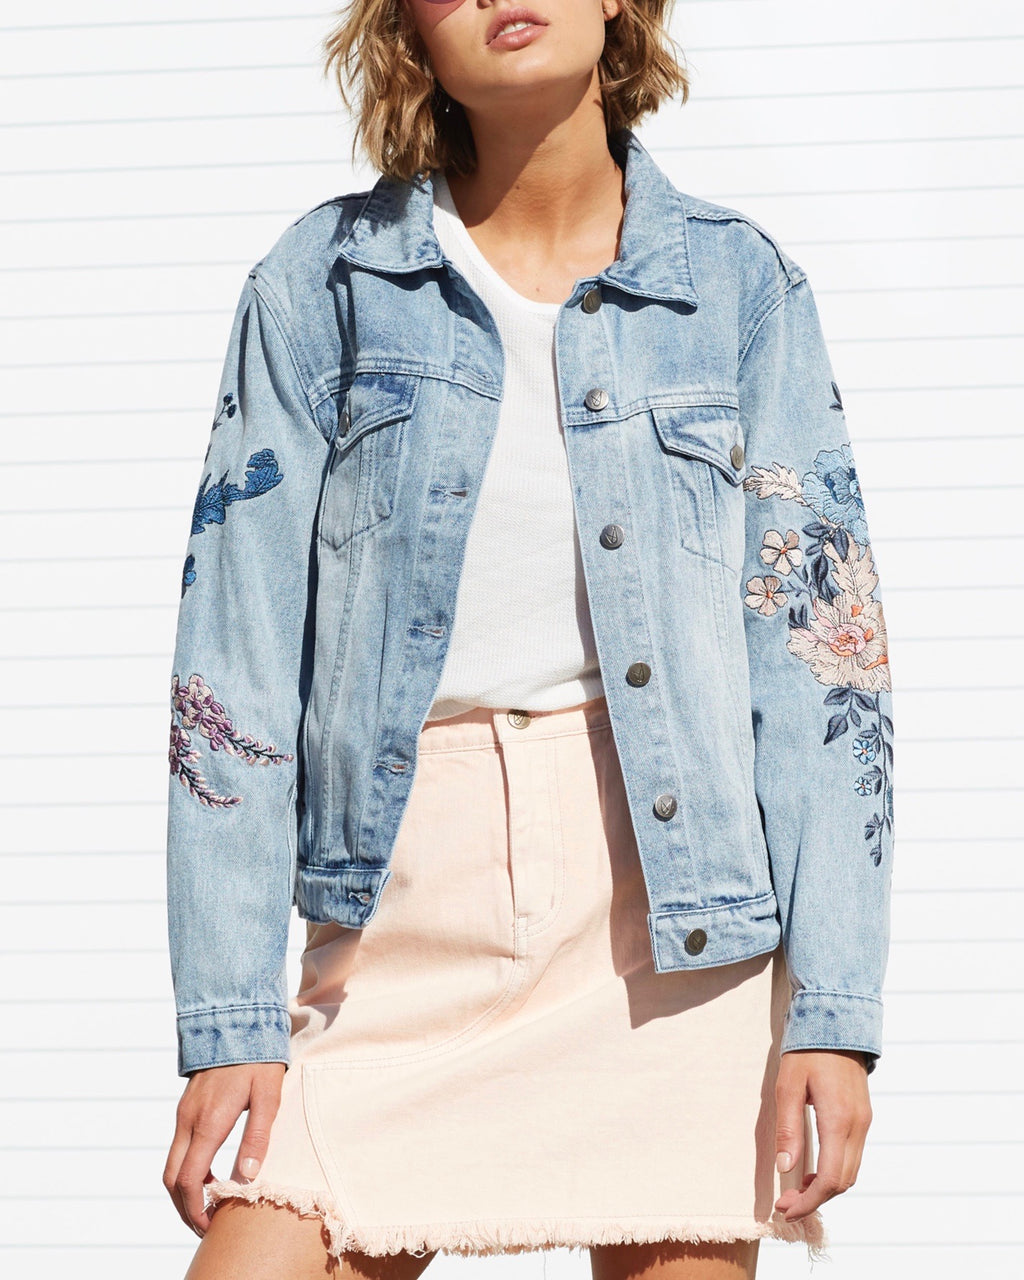 MINKPINK - Wild Flower Denim Jacket in Dusty Blue